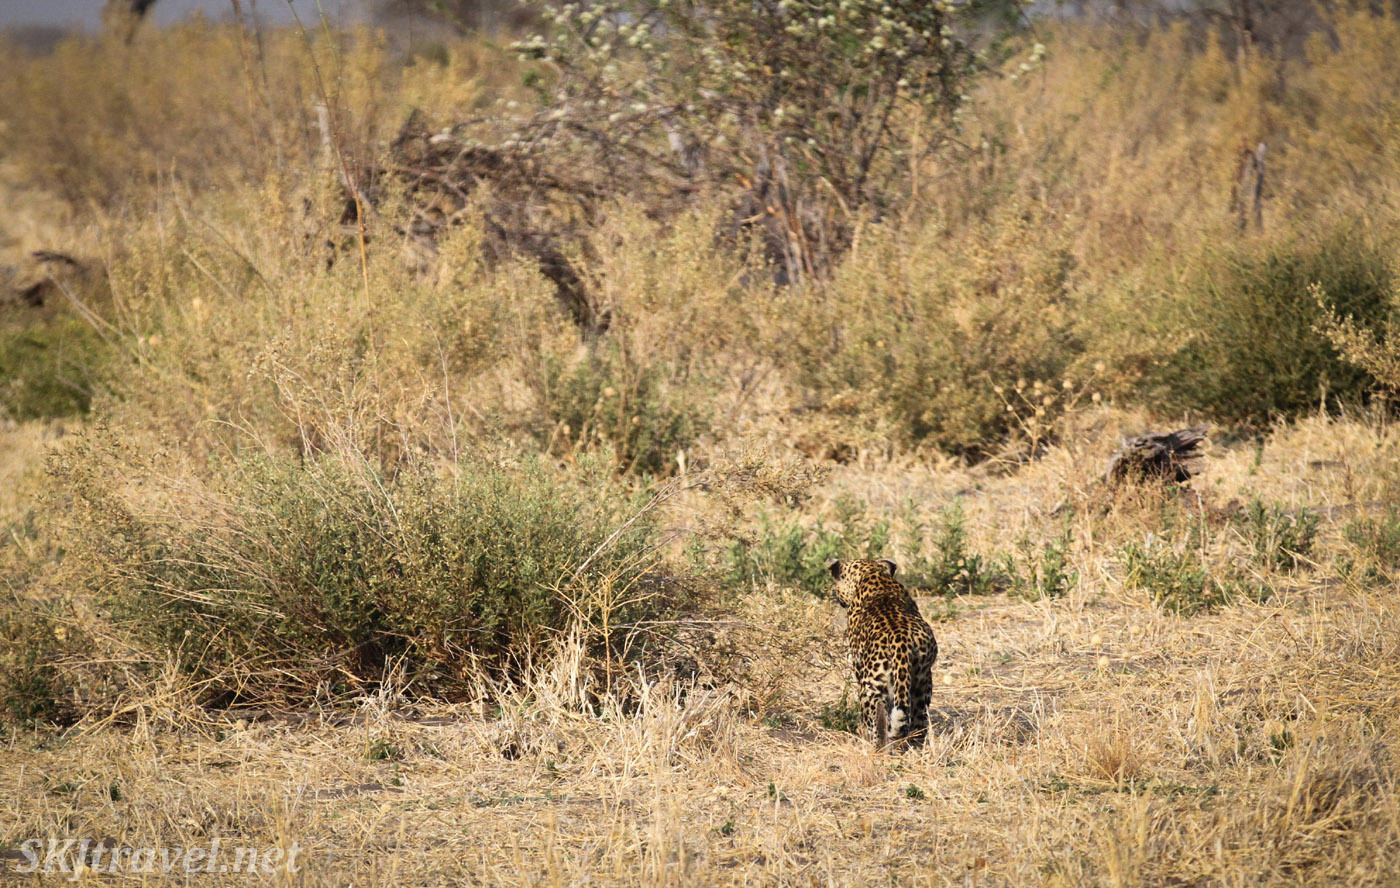 Female leopard disappearing into the bush. Savuti, Botswana. Leopardess.